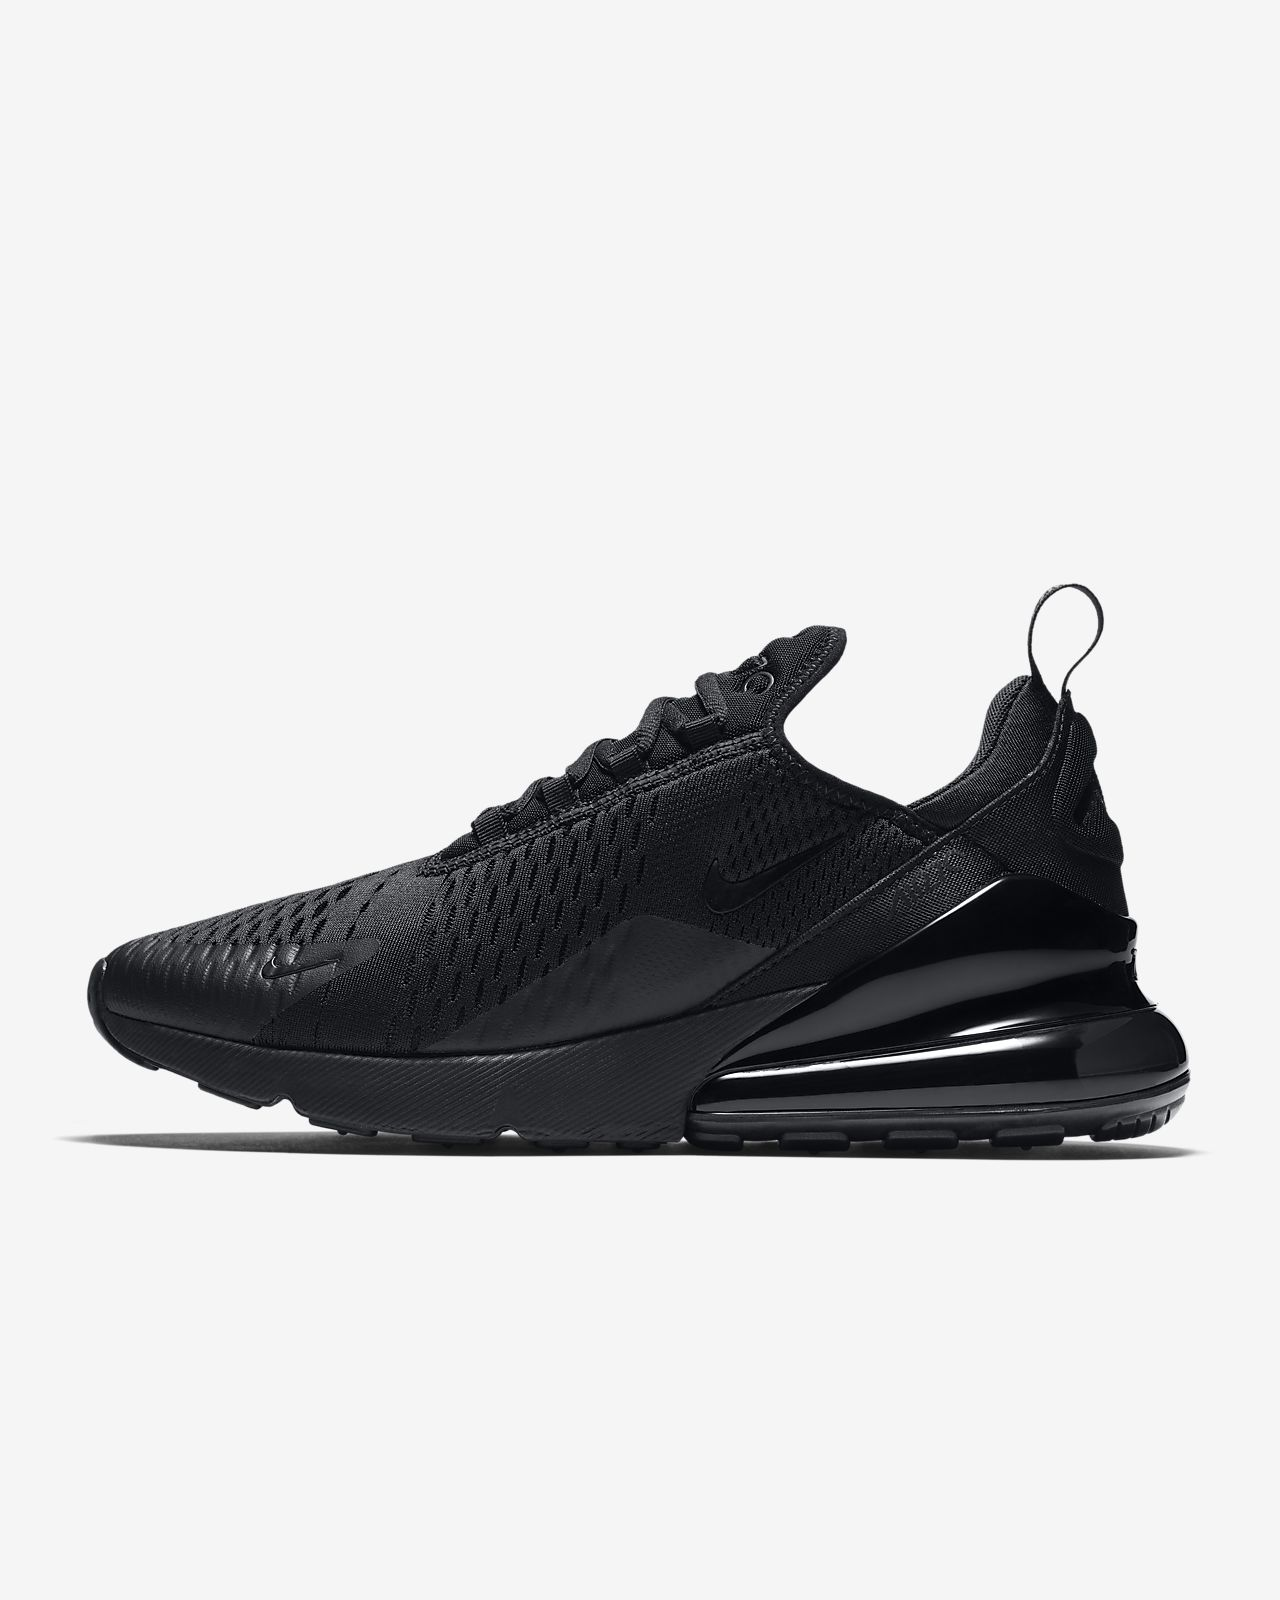 nike shoes on sale air max, nike air max 90 hot burst black